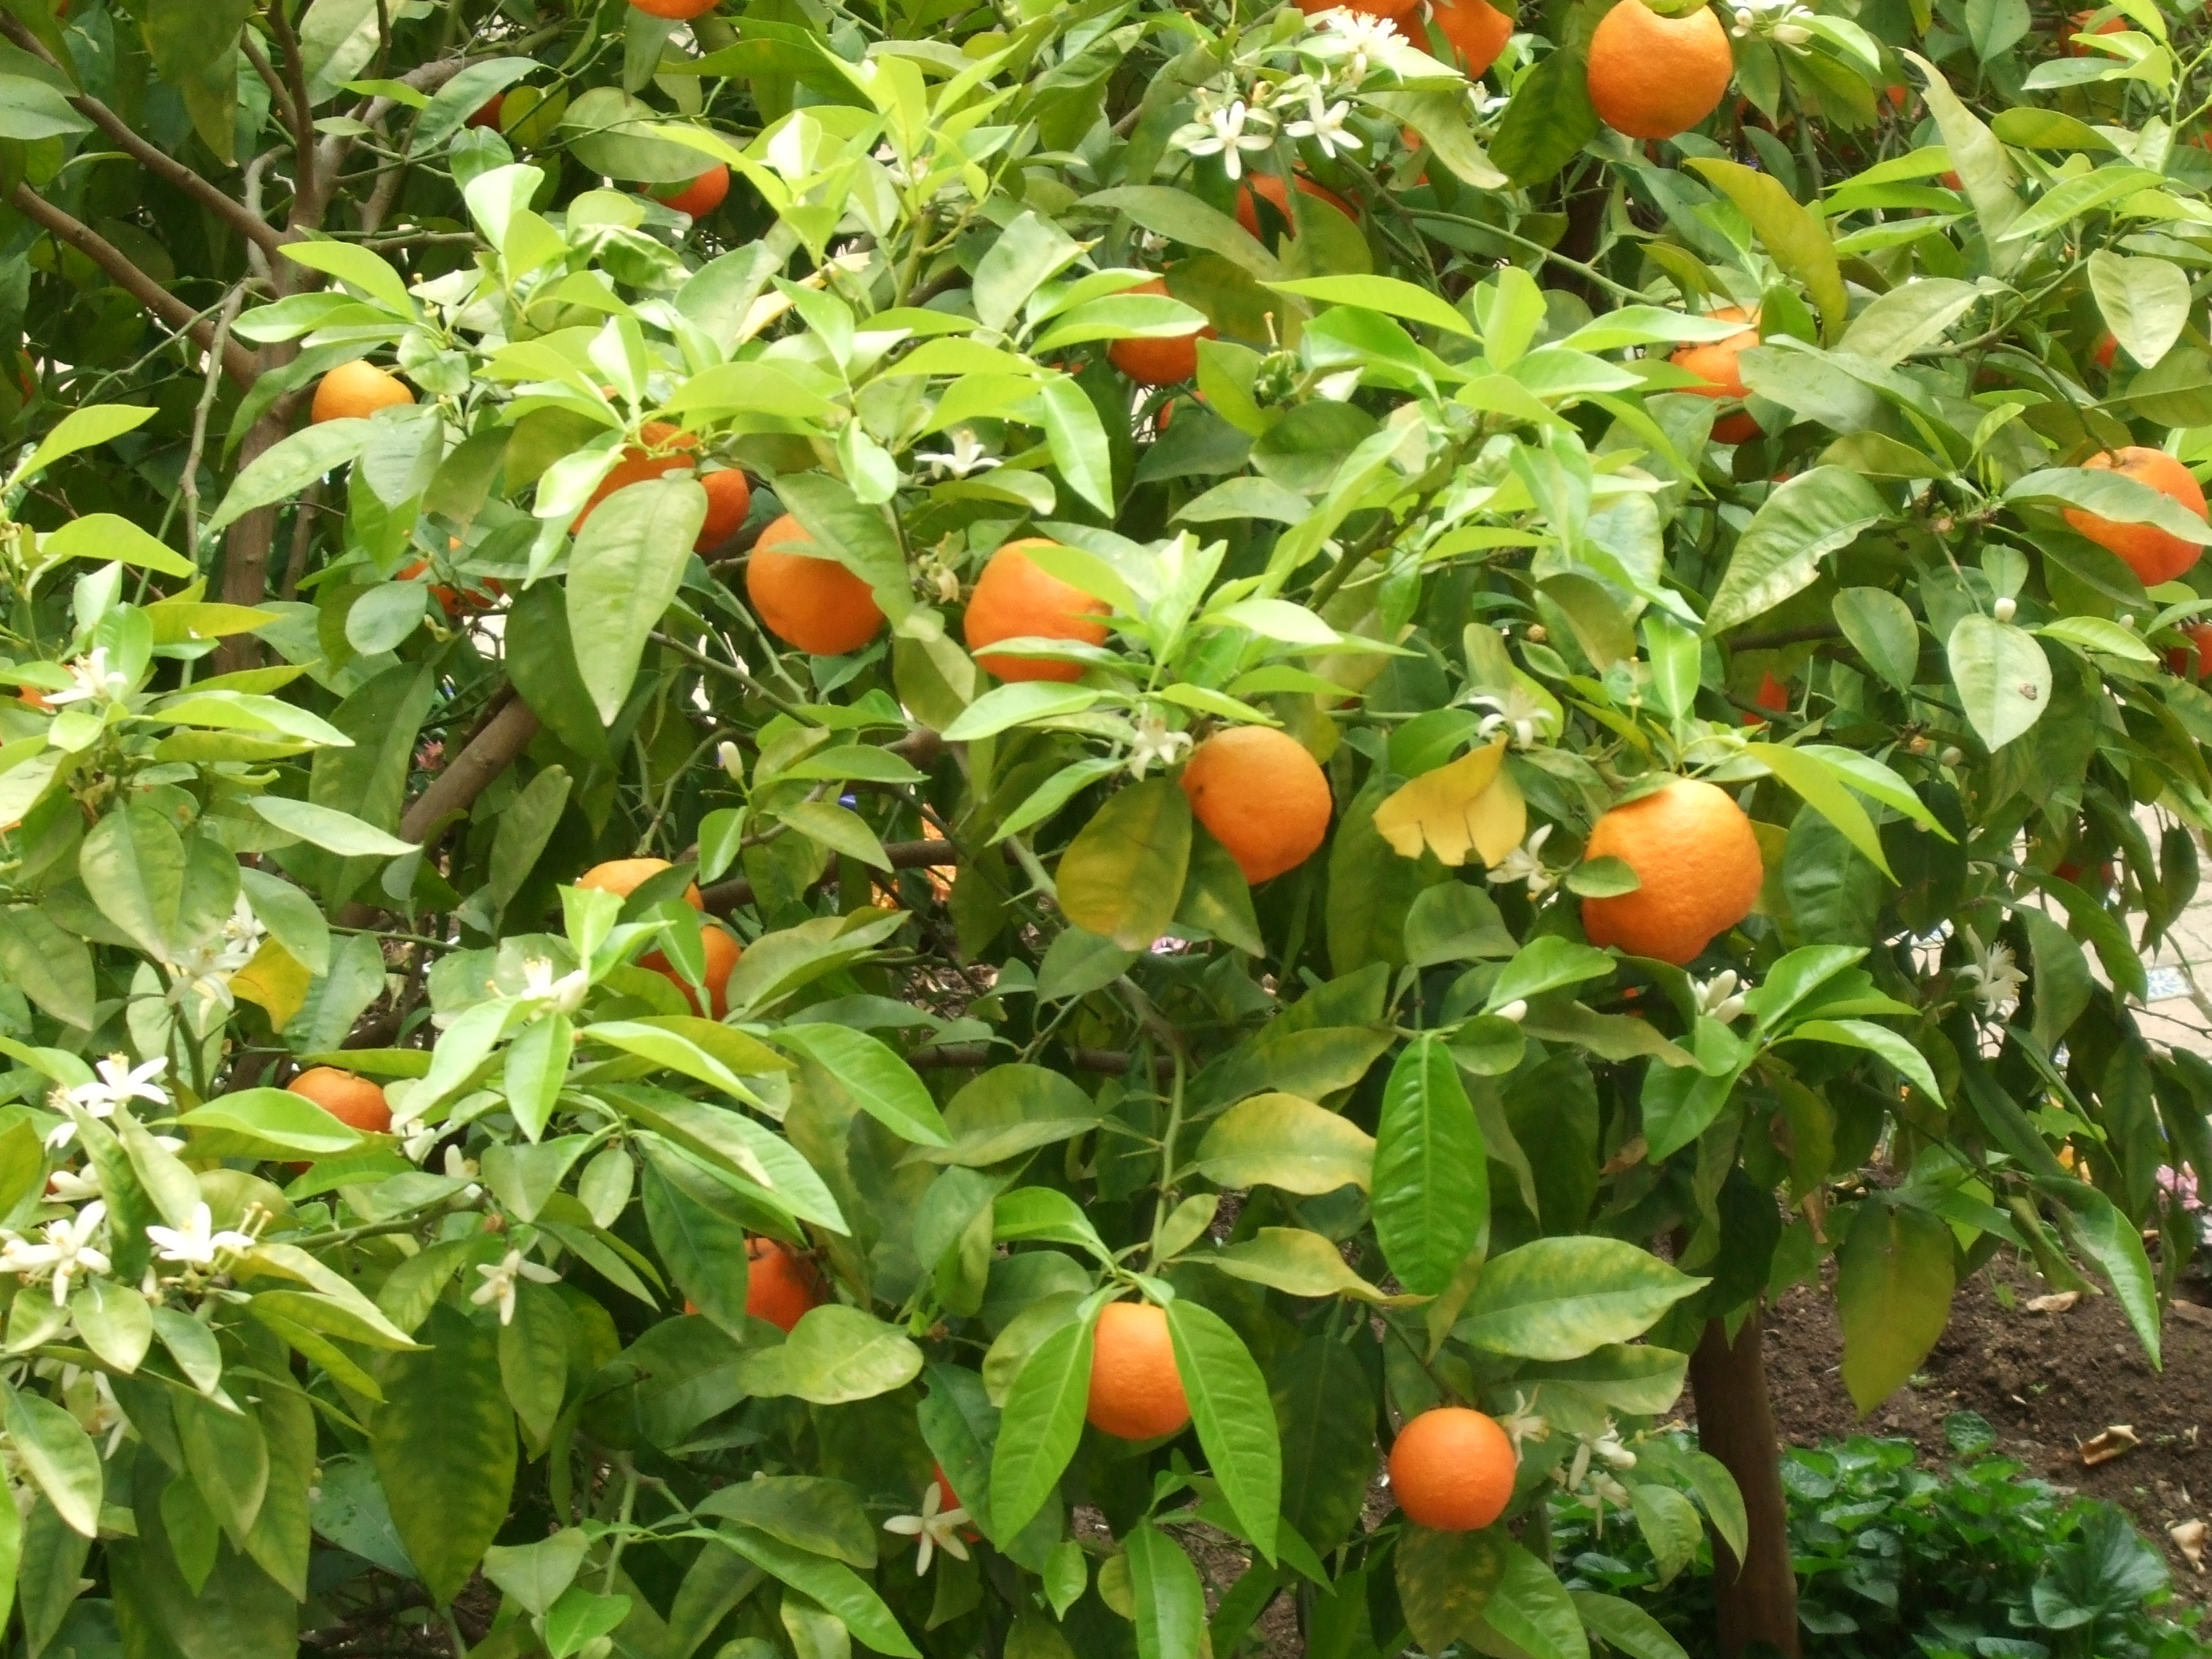 It is also powerful in terms of fertility magic and is associated with Gaea, the goddess of fertility.  Orange trees bear fruit and blossoms altogether, and when planted in the garden can bless the home and ward off infertility.  -- Orange Metaphysical Properties